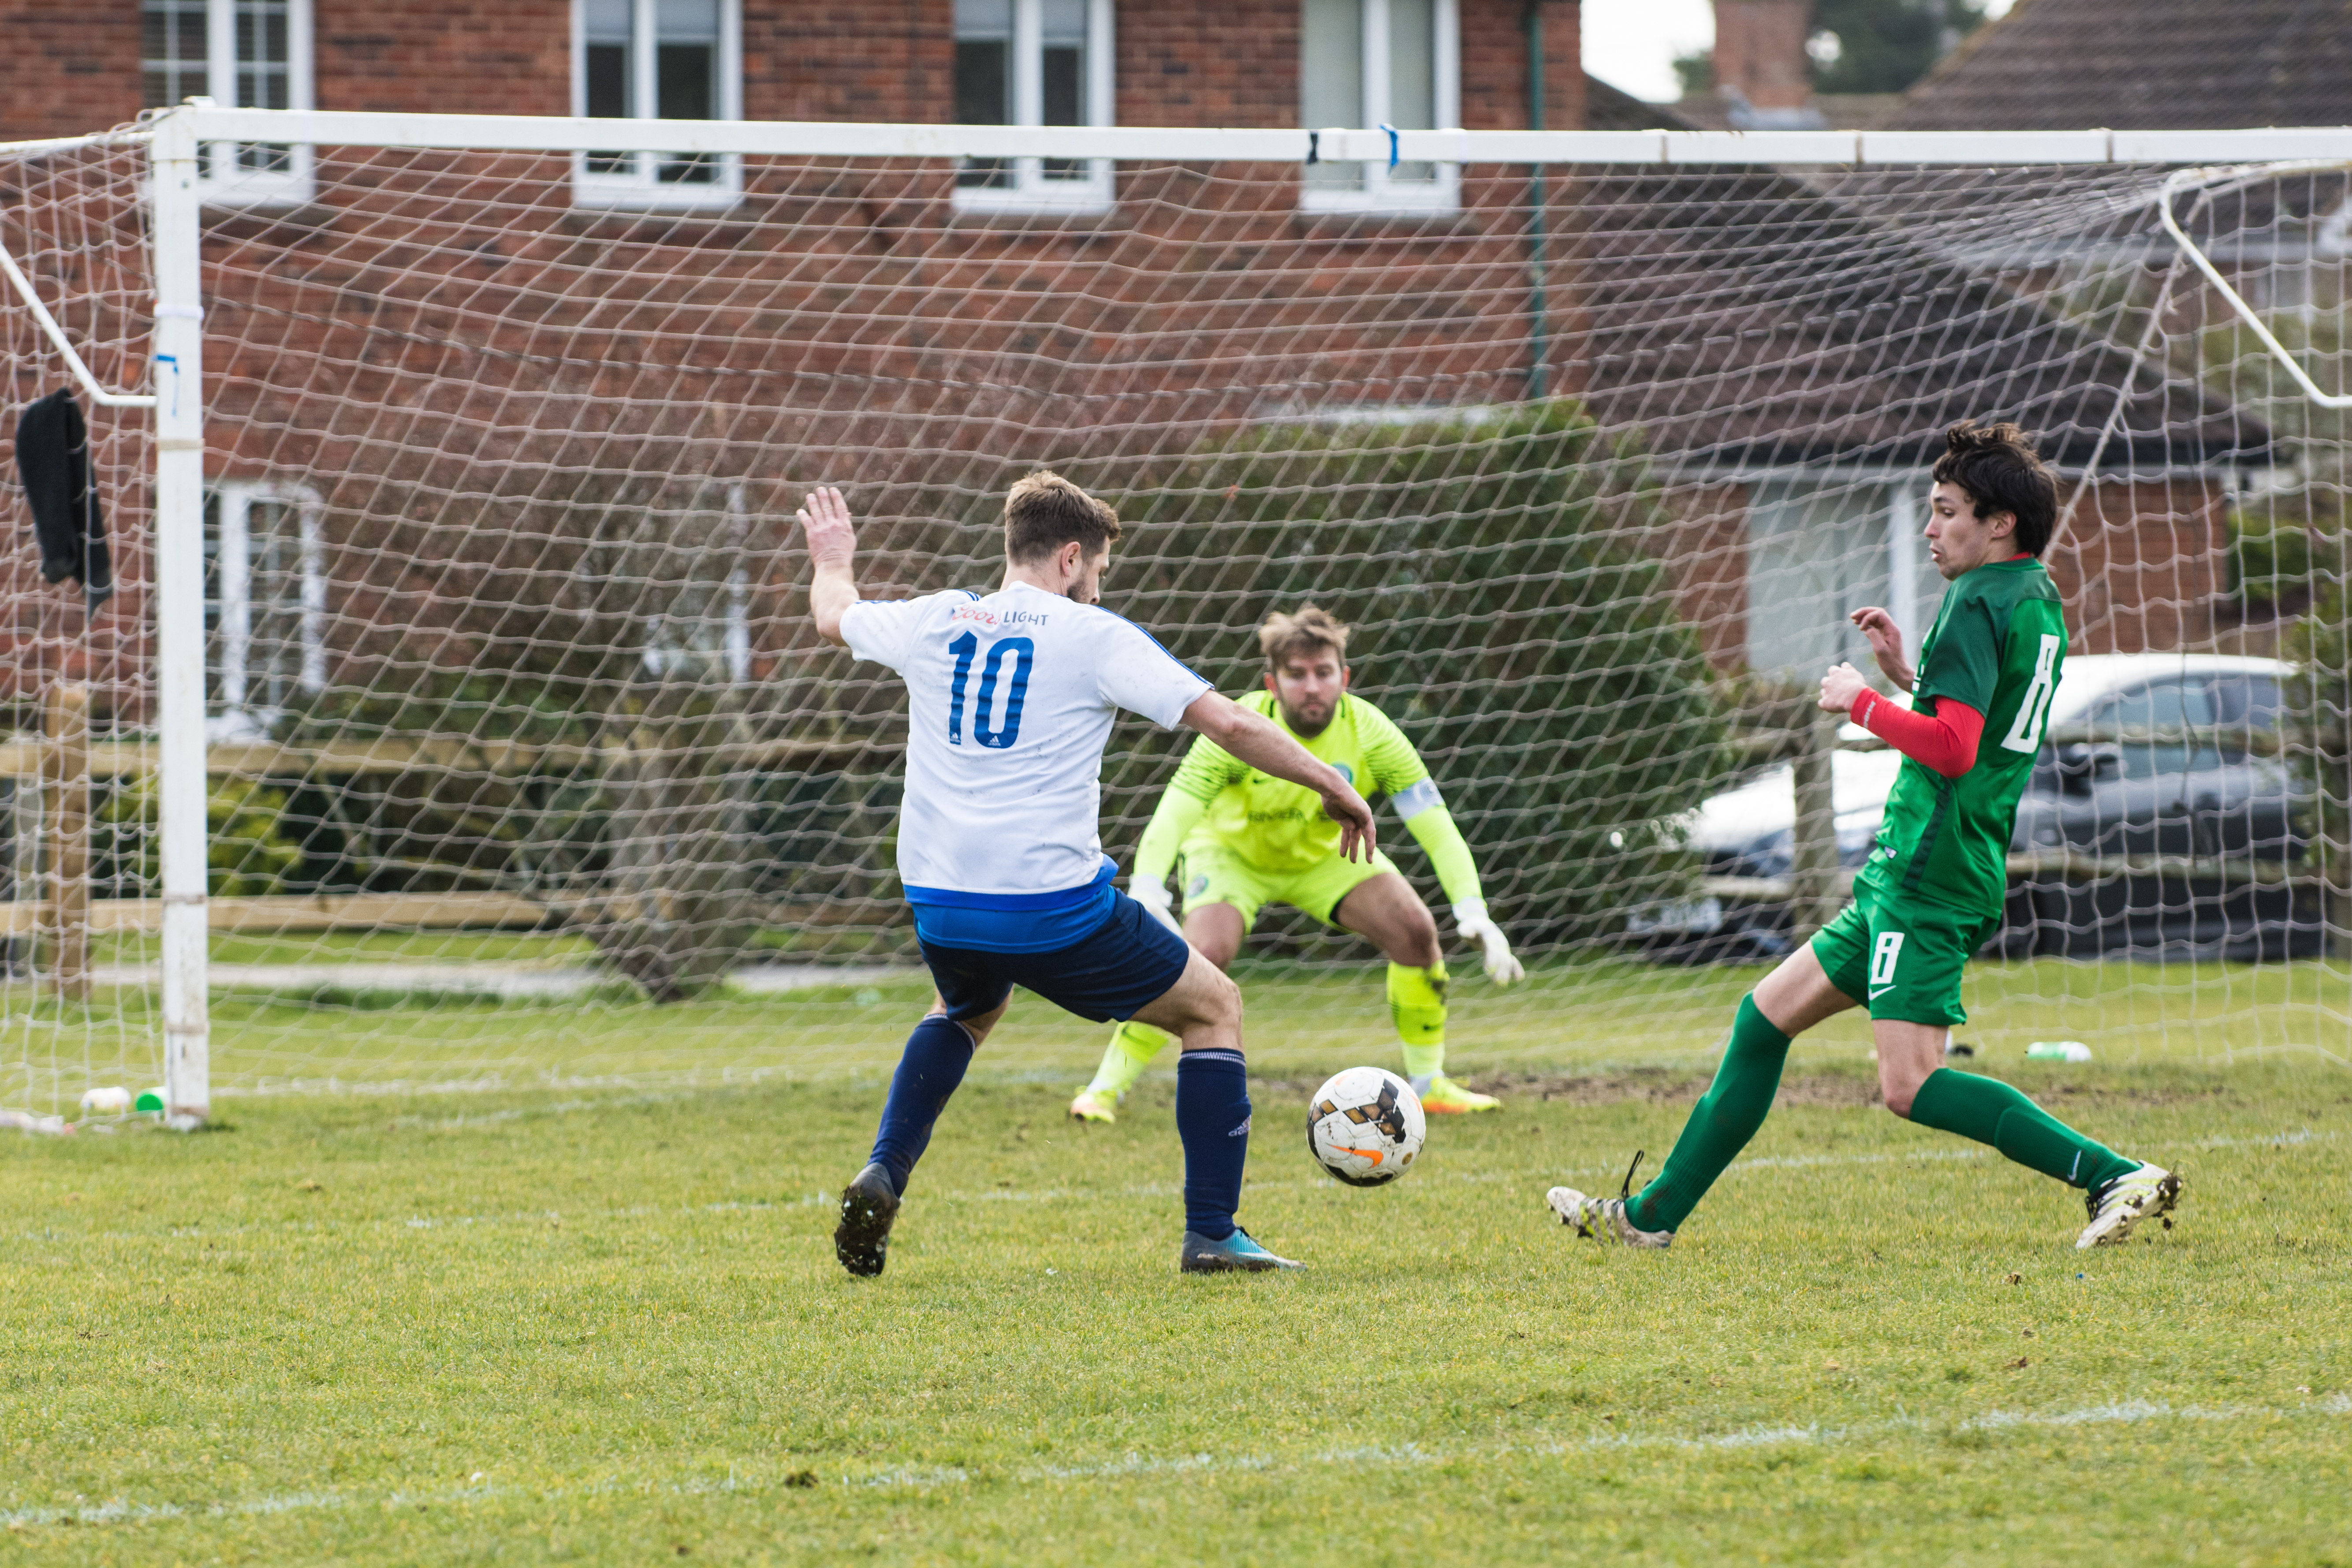 DAVID_JEFFERY FC Sporting vs Sompting 2nds 10.03.18 67